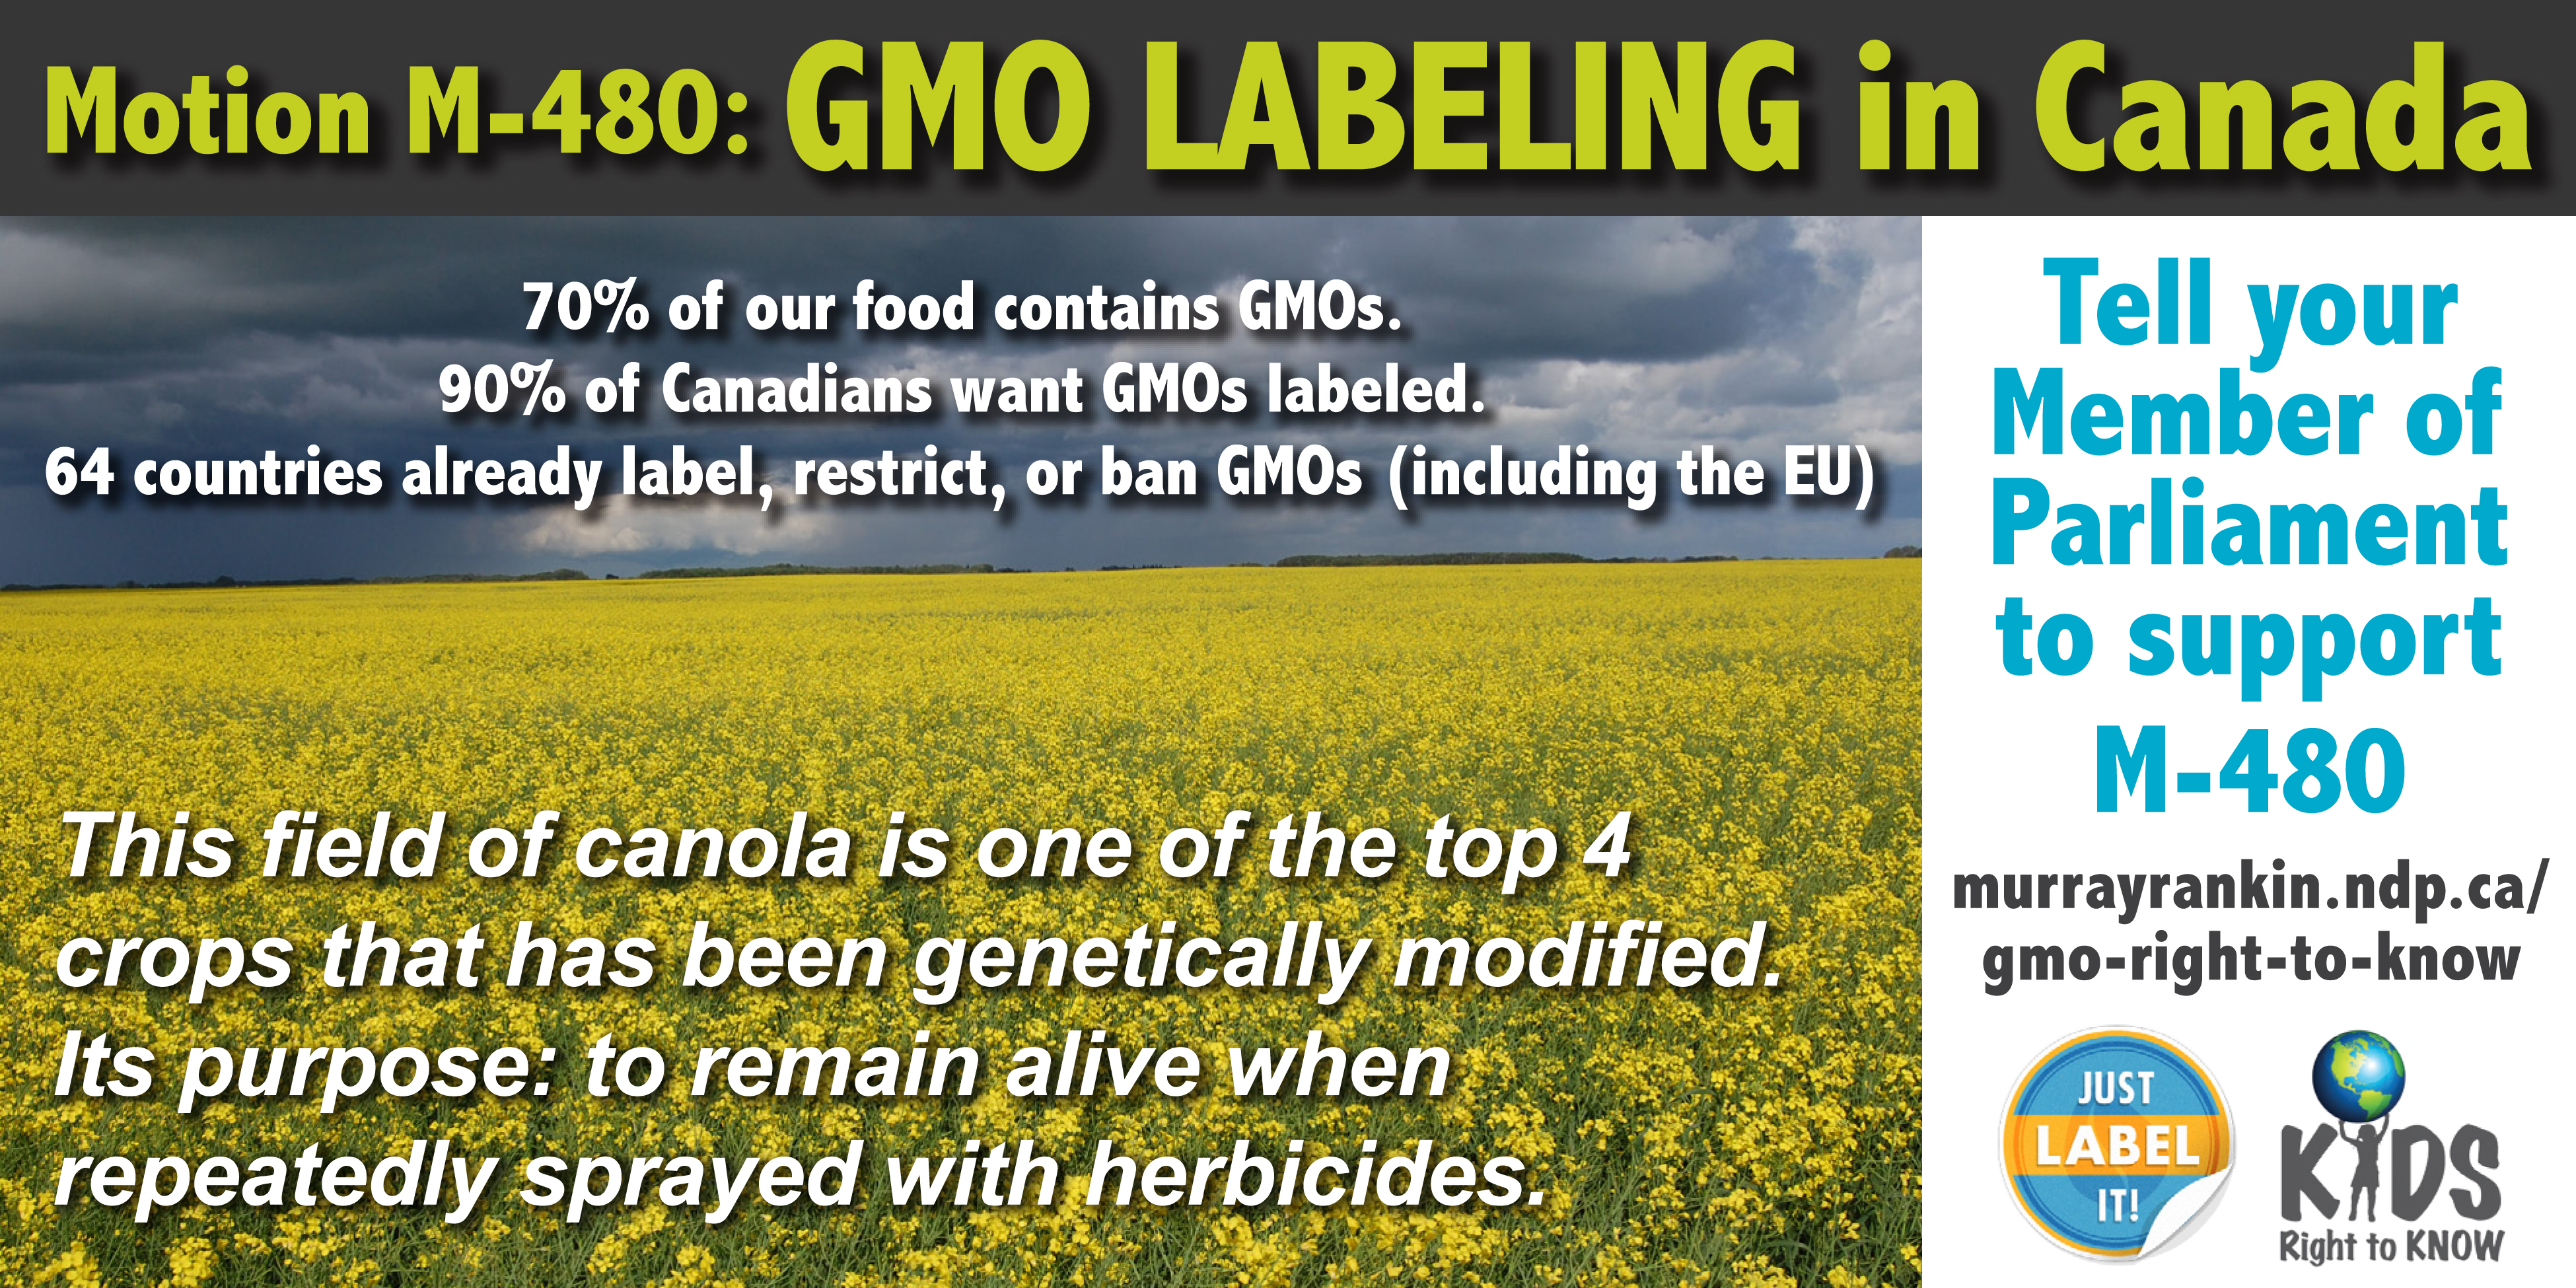 genetically modified food in canada essay The tools you need to write a quality essay or term paper essays related to health and genetically modified foods 1 genetically modified food is very.